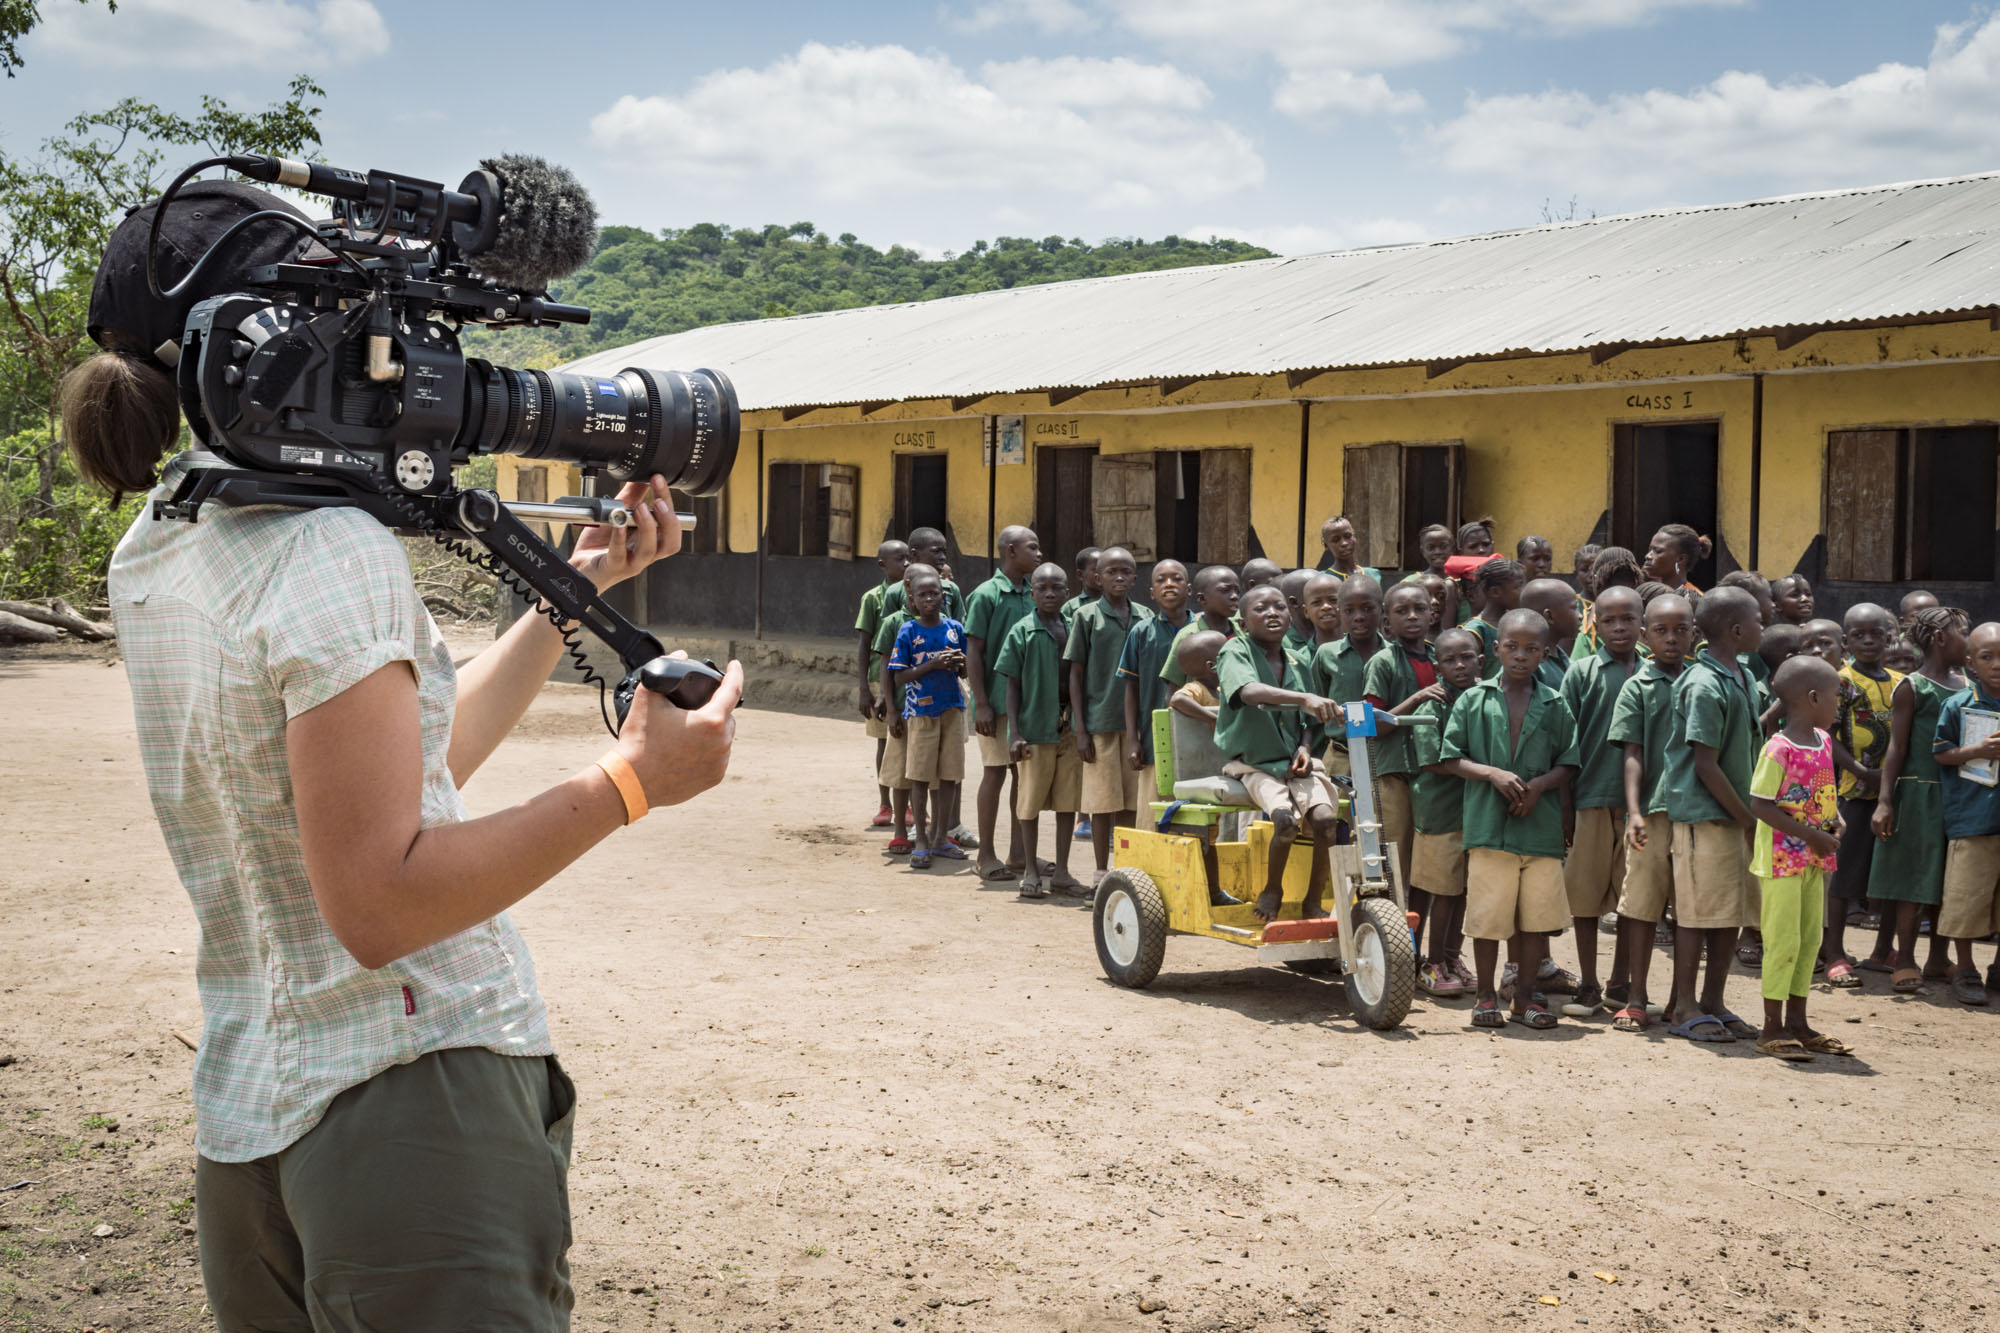 Leanne Gater | Documentary cinematographer and shooting producer/director